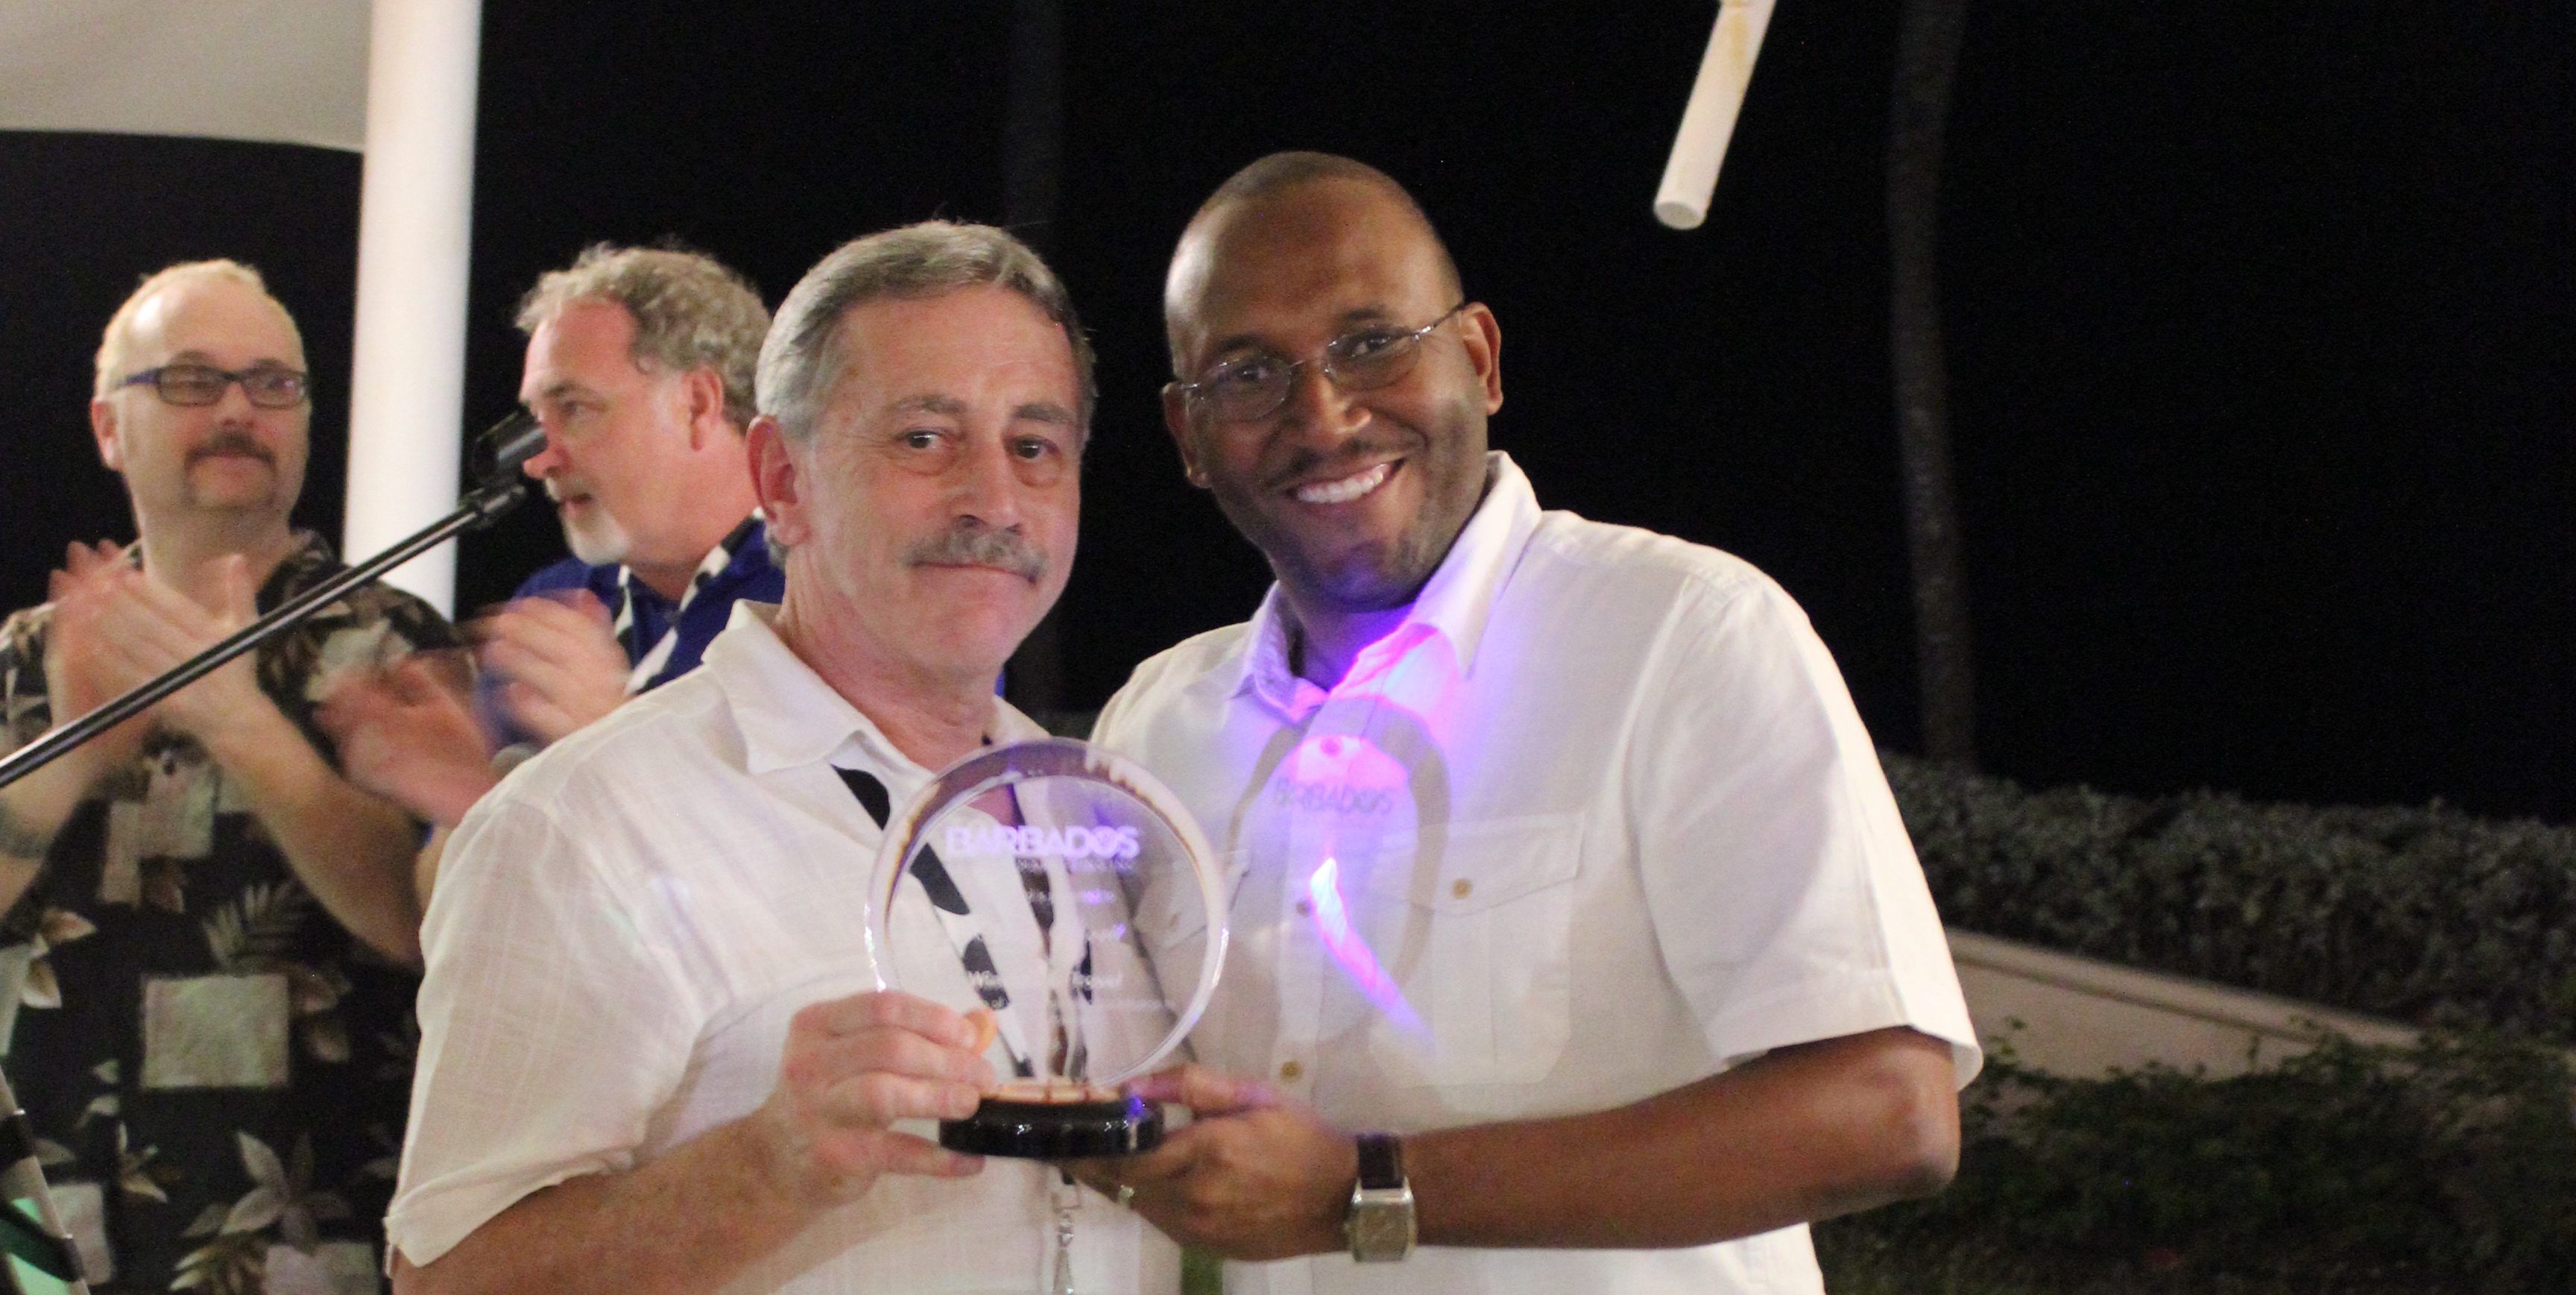 Winchester travel organizer Owen Shortt receives an award from Peter Mayers of Barbados Tourism Marketing Inc. Photo by Kimberley Johnson, Ottawa Magazine.